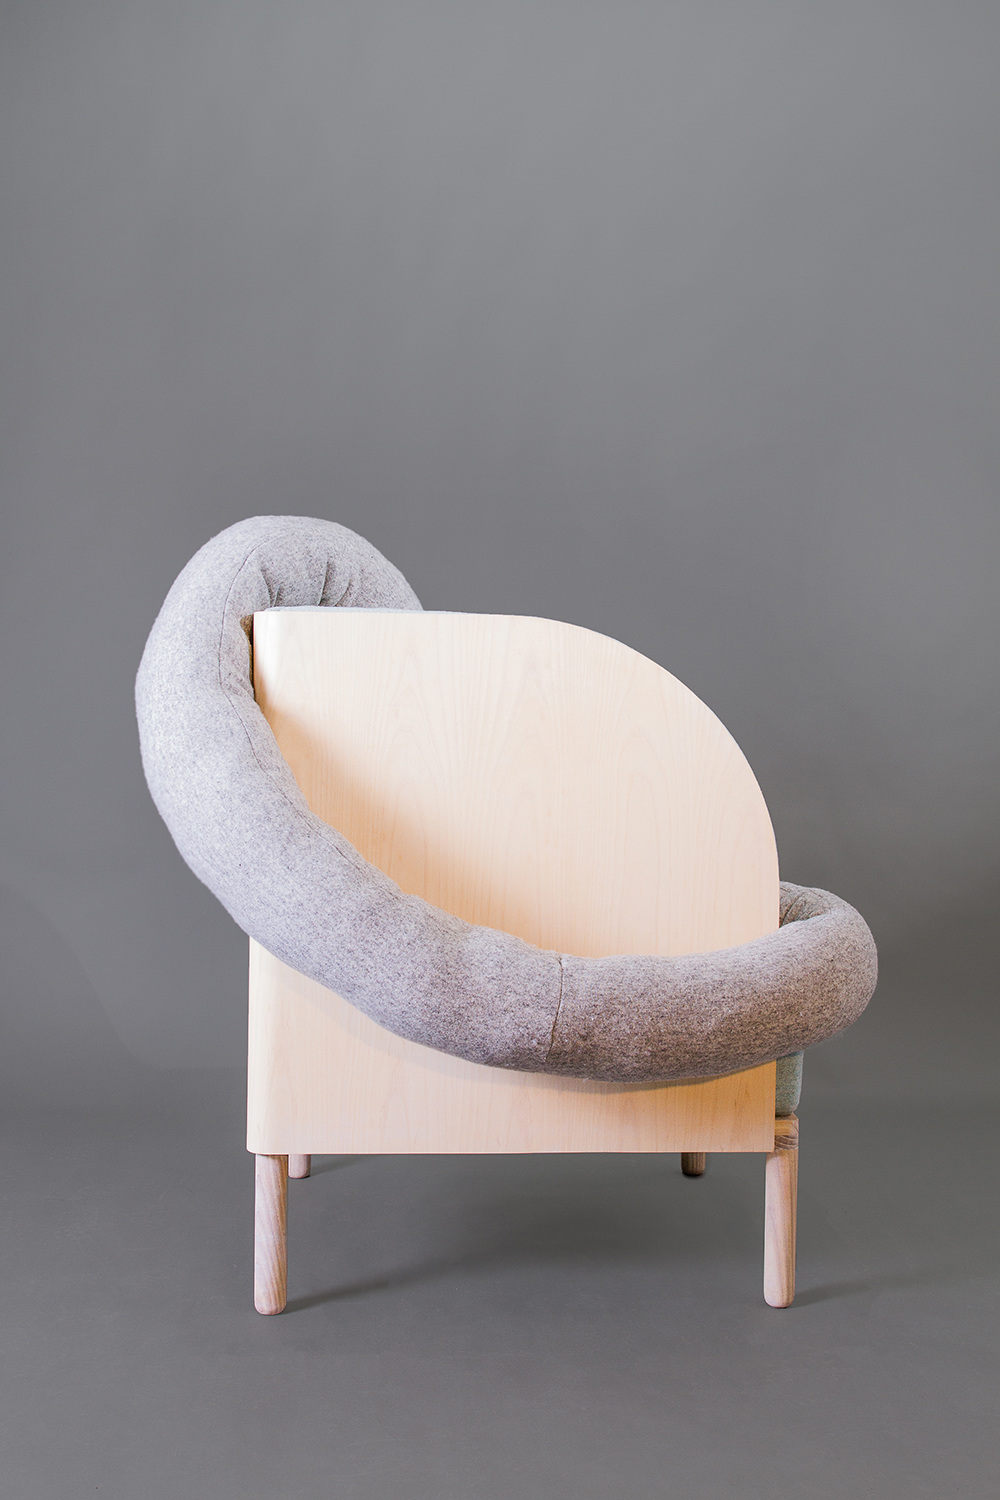 Amanda Ivarsøy Kovacs' chair offers the sitter relaxation and control. The tube shaped pillow serves as a comforting addition.